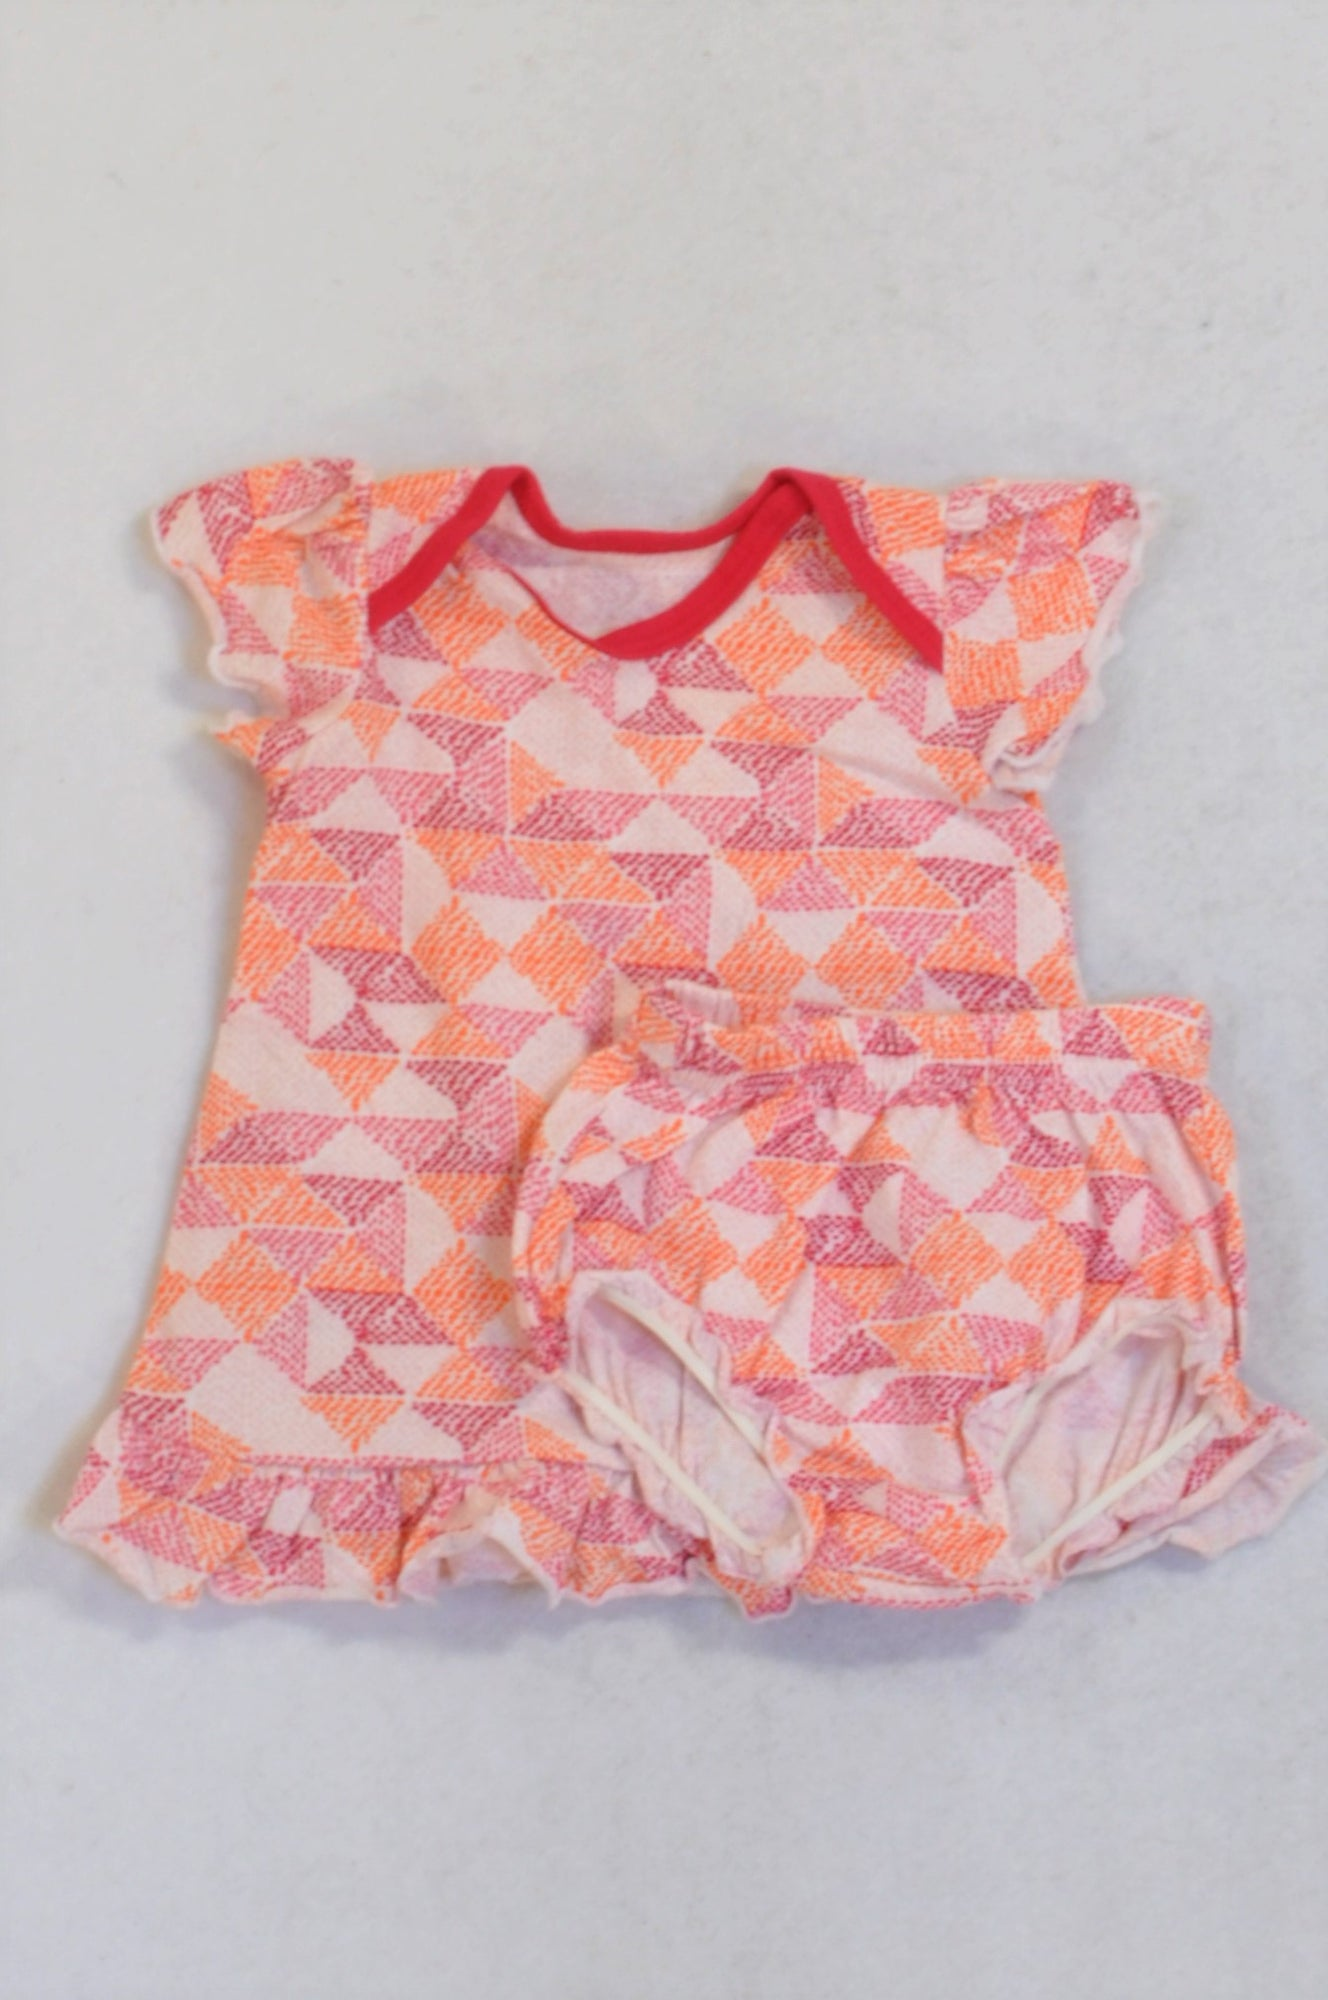 Woolworths Pink Orange Geometric Dotty Bloomers & Dress Girls 0-3 months